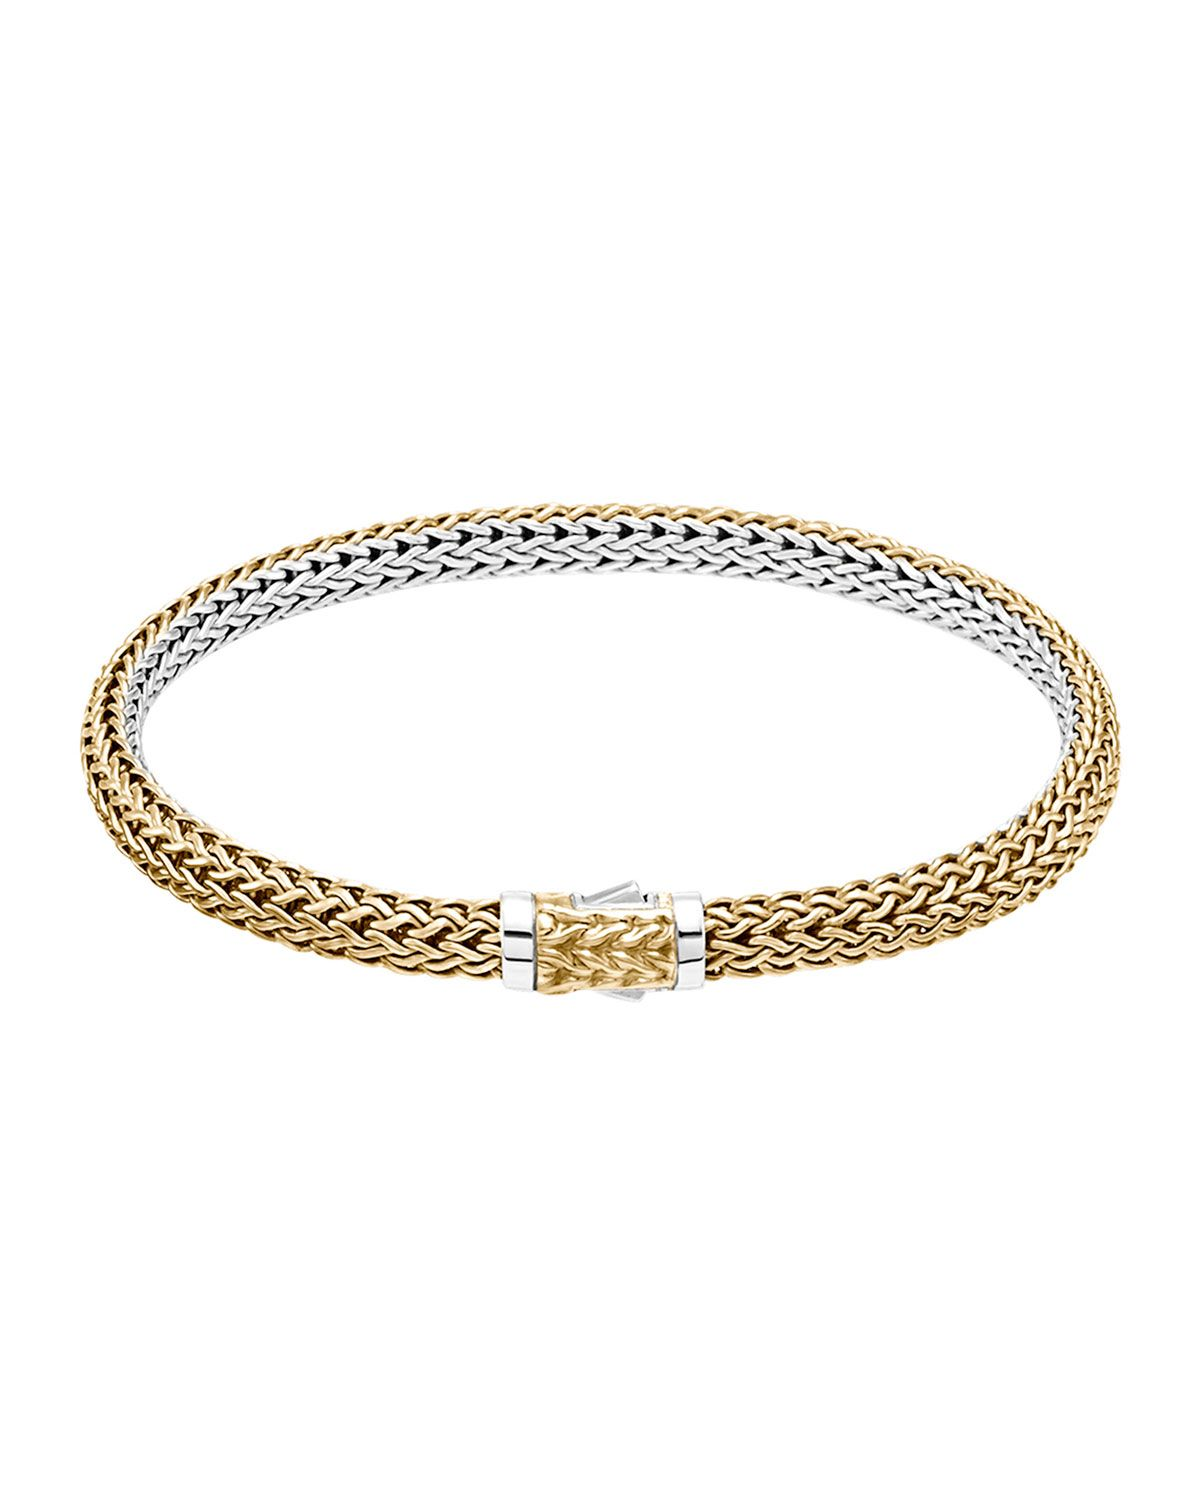 John Hardy Classic Chain Gold & Silver Small Reversible Bracelet ySuicAL